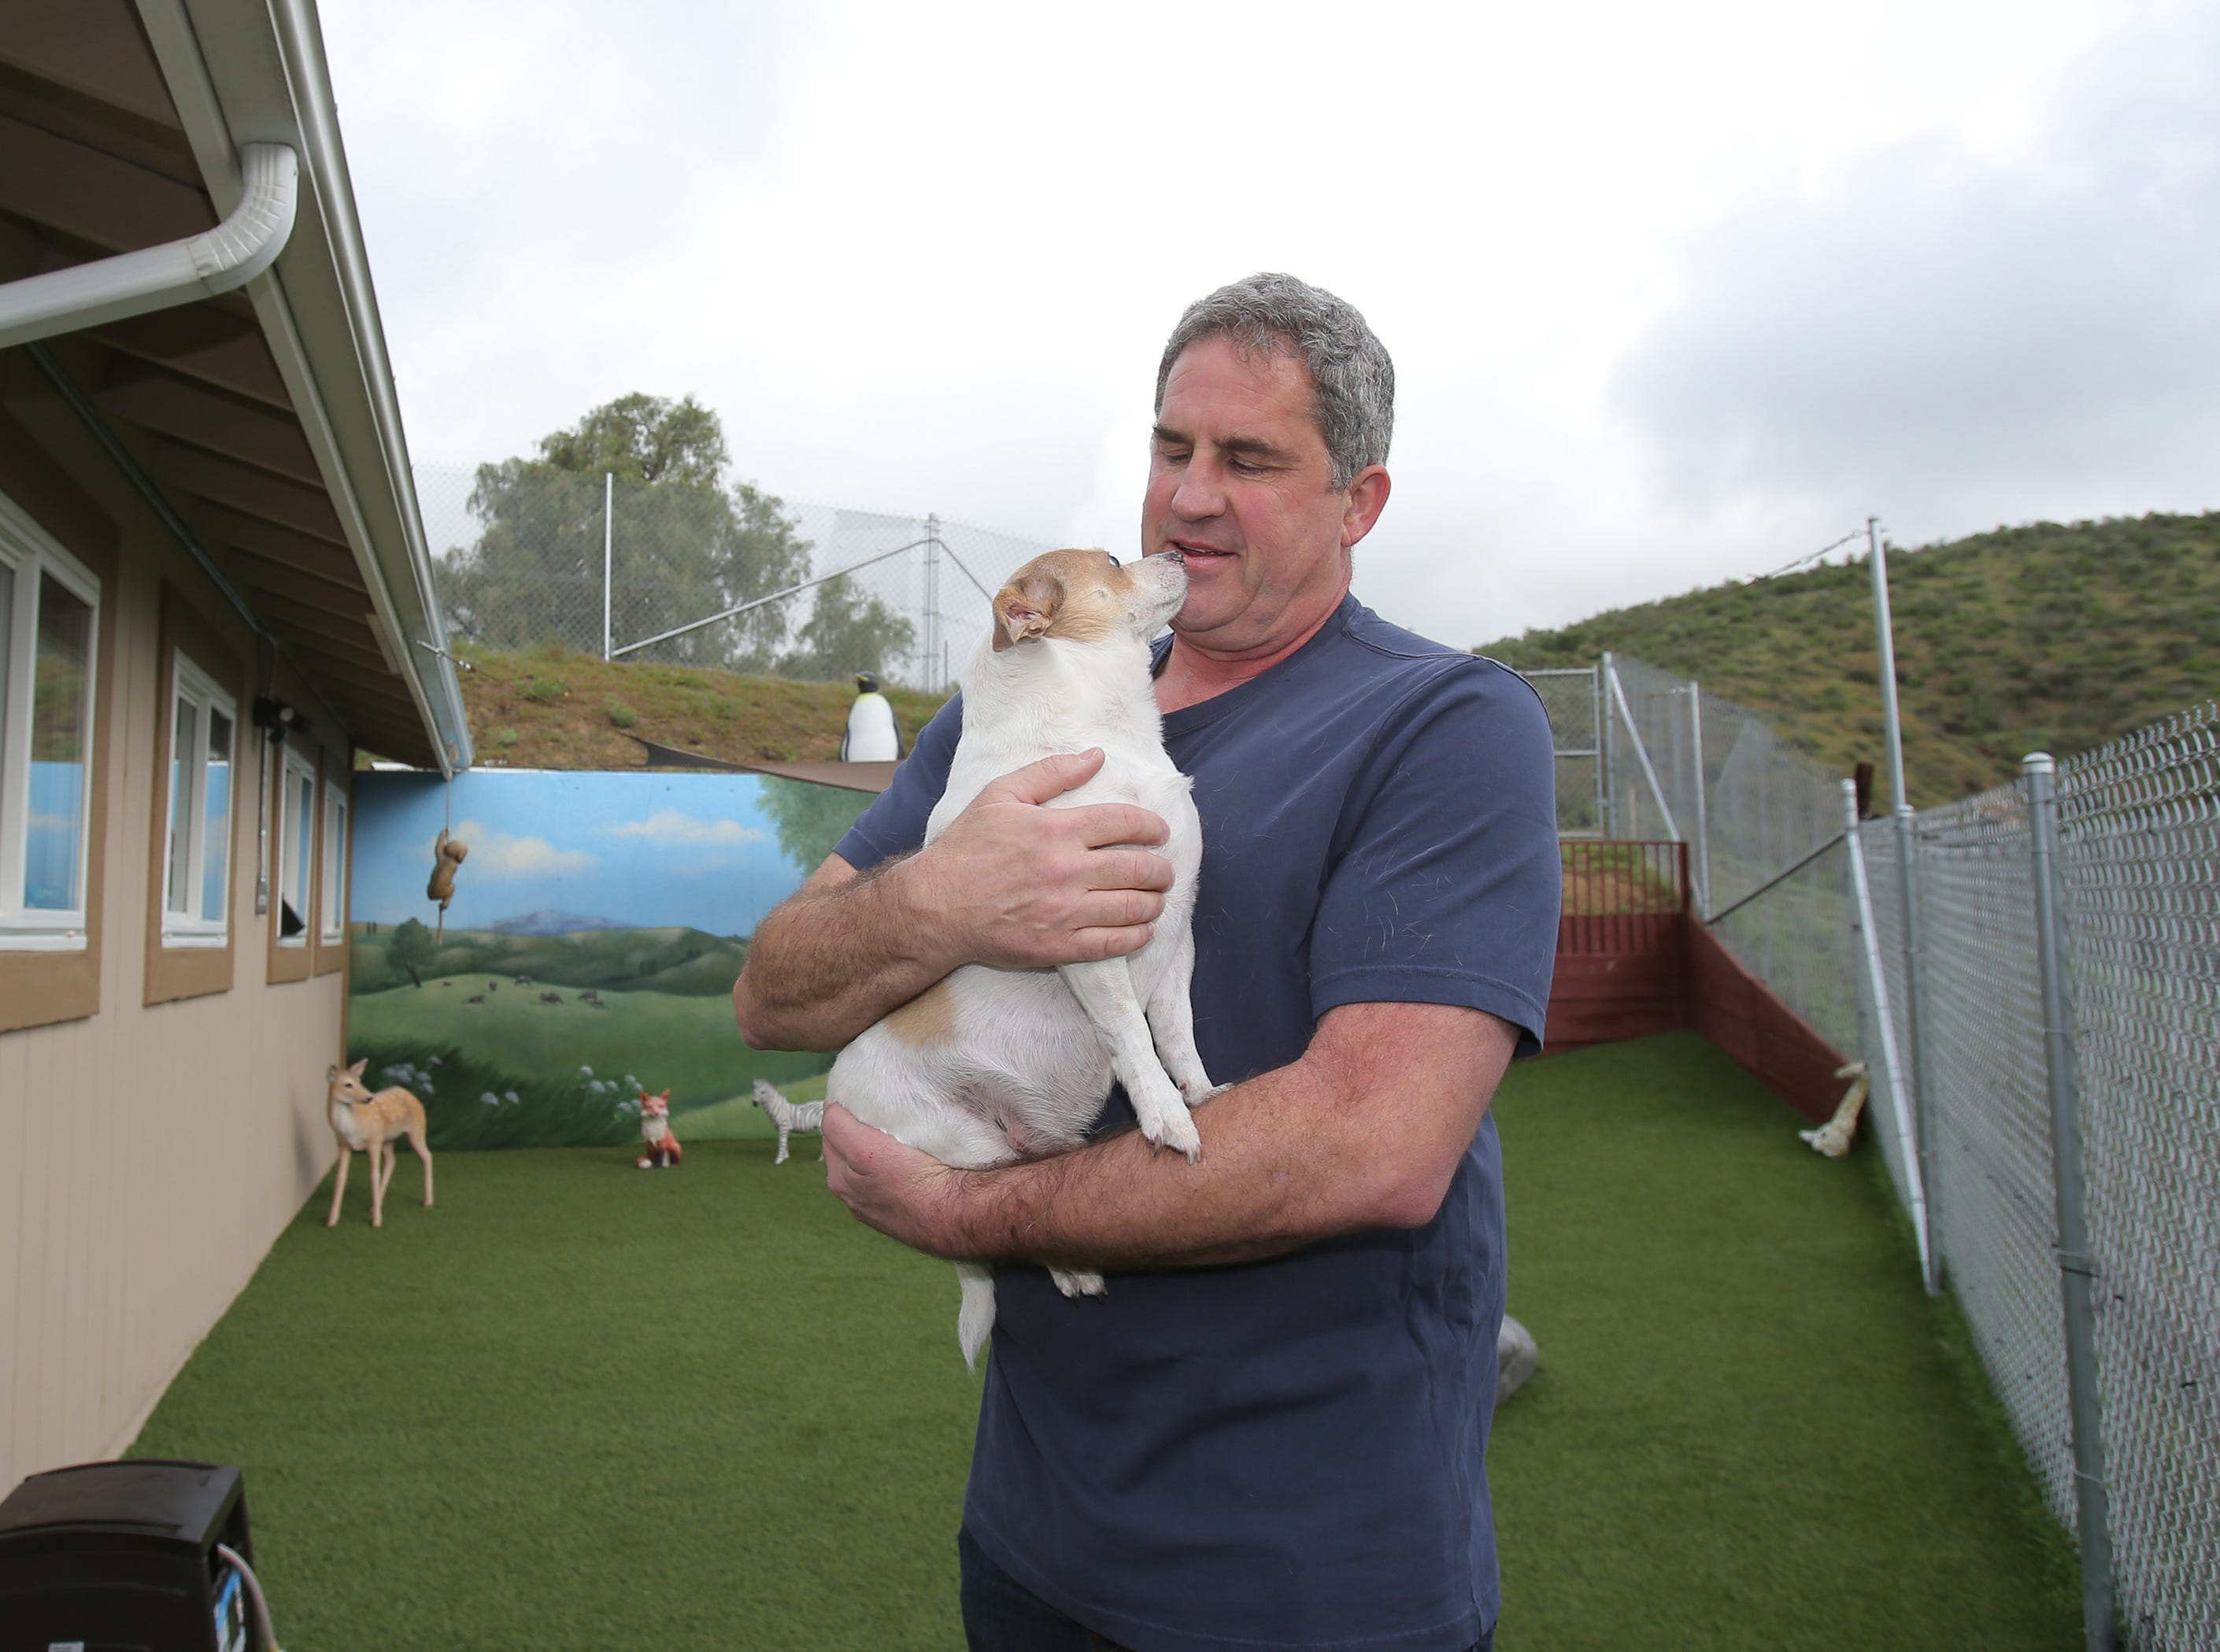 Ted Shumway holds Maxie in one of the play areas at his Wise Tails, senior dog sanctuary in Simi Valley. Shumway is the founder of the sanctuary that is home to 20 senior dogs, most of them rescued from local animal shelters. His nonprofit is coming up on its first-year anniversary.